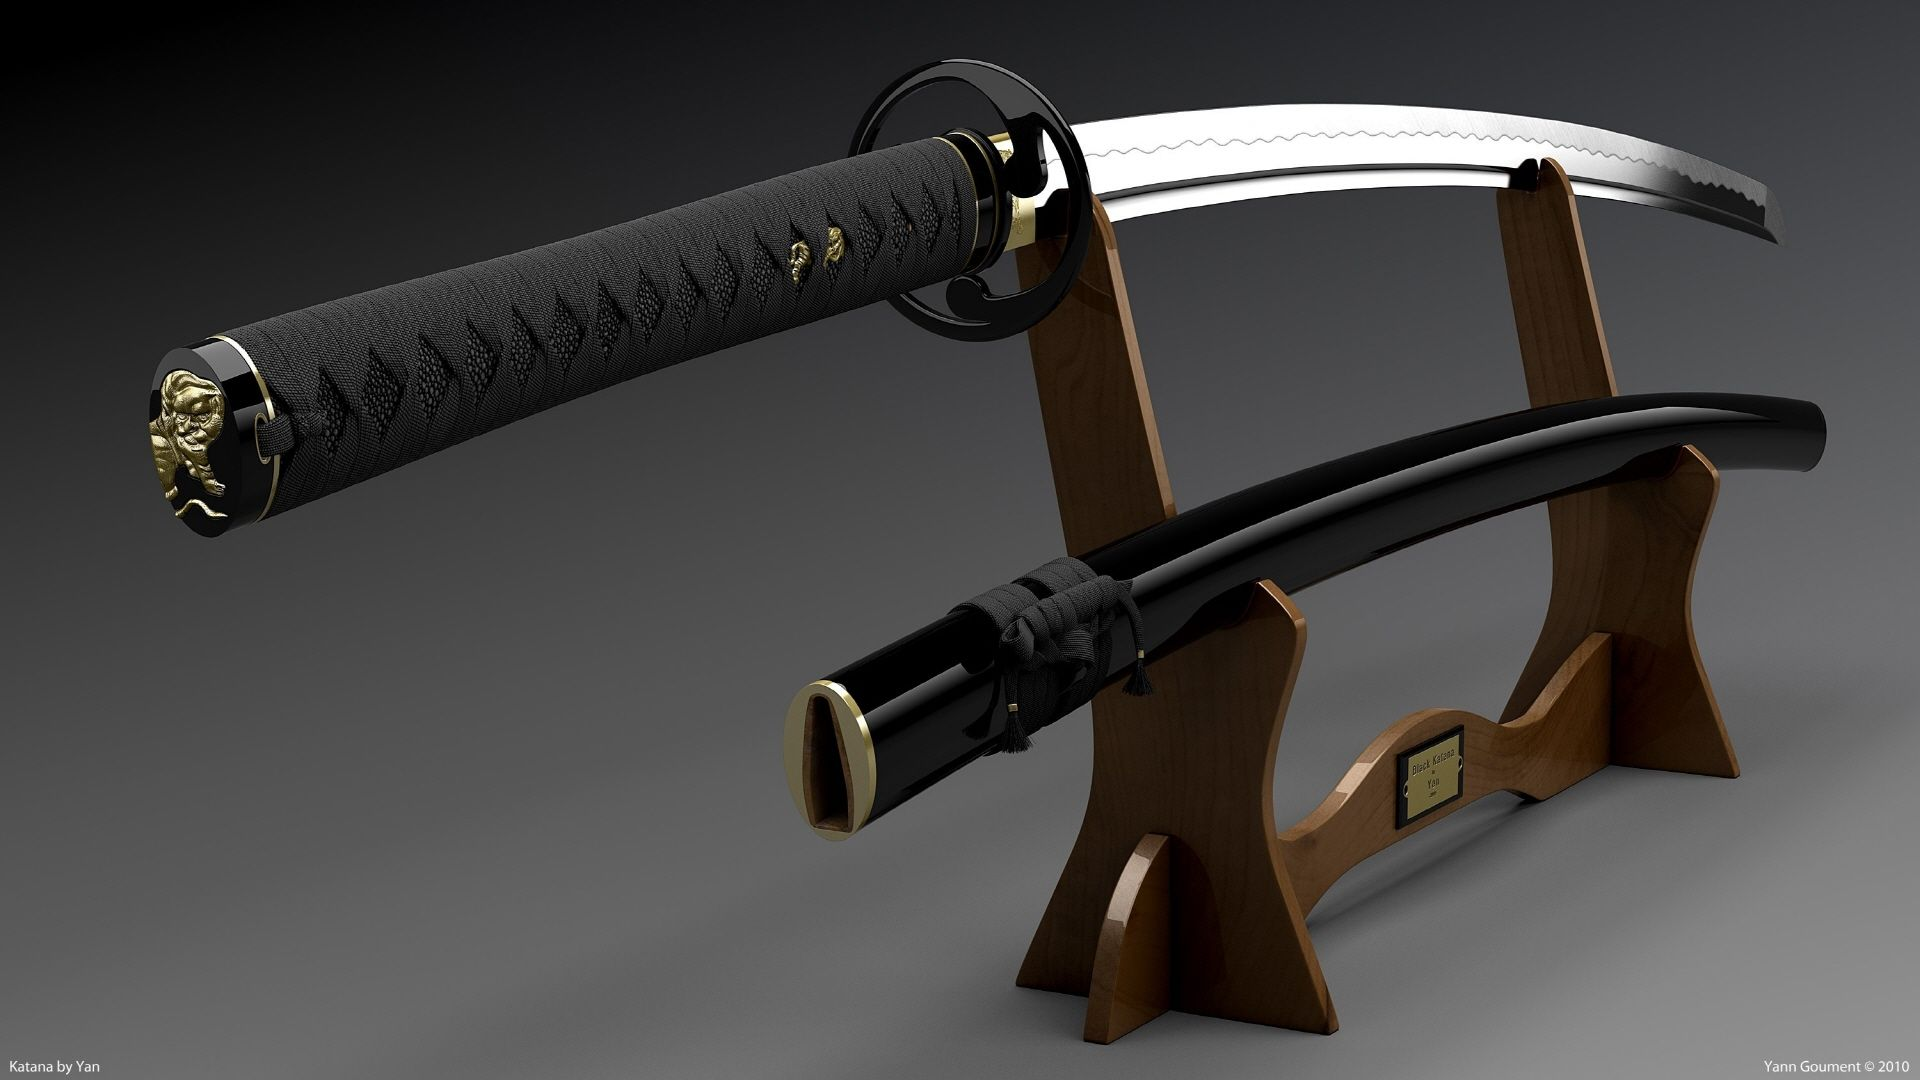 Samurai Swords Katana Wallpaper Hd Samurai Swords Wallpapers